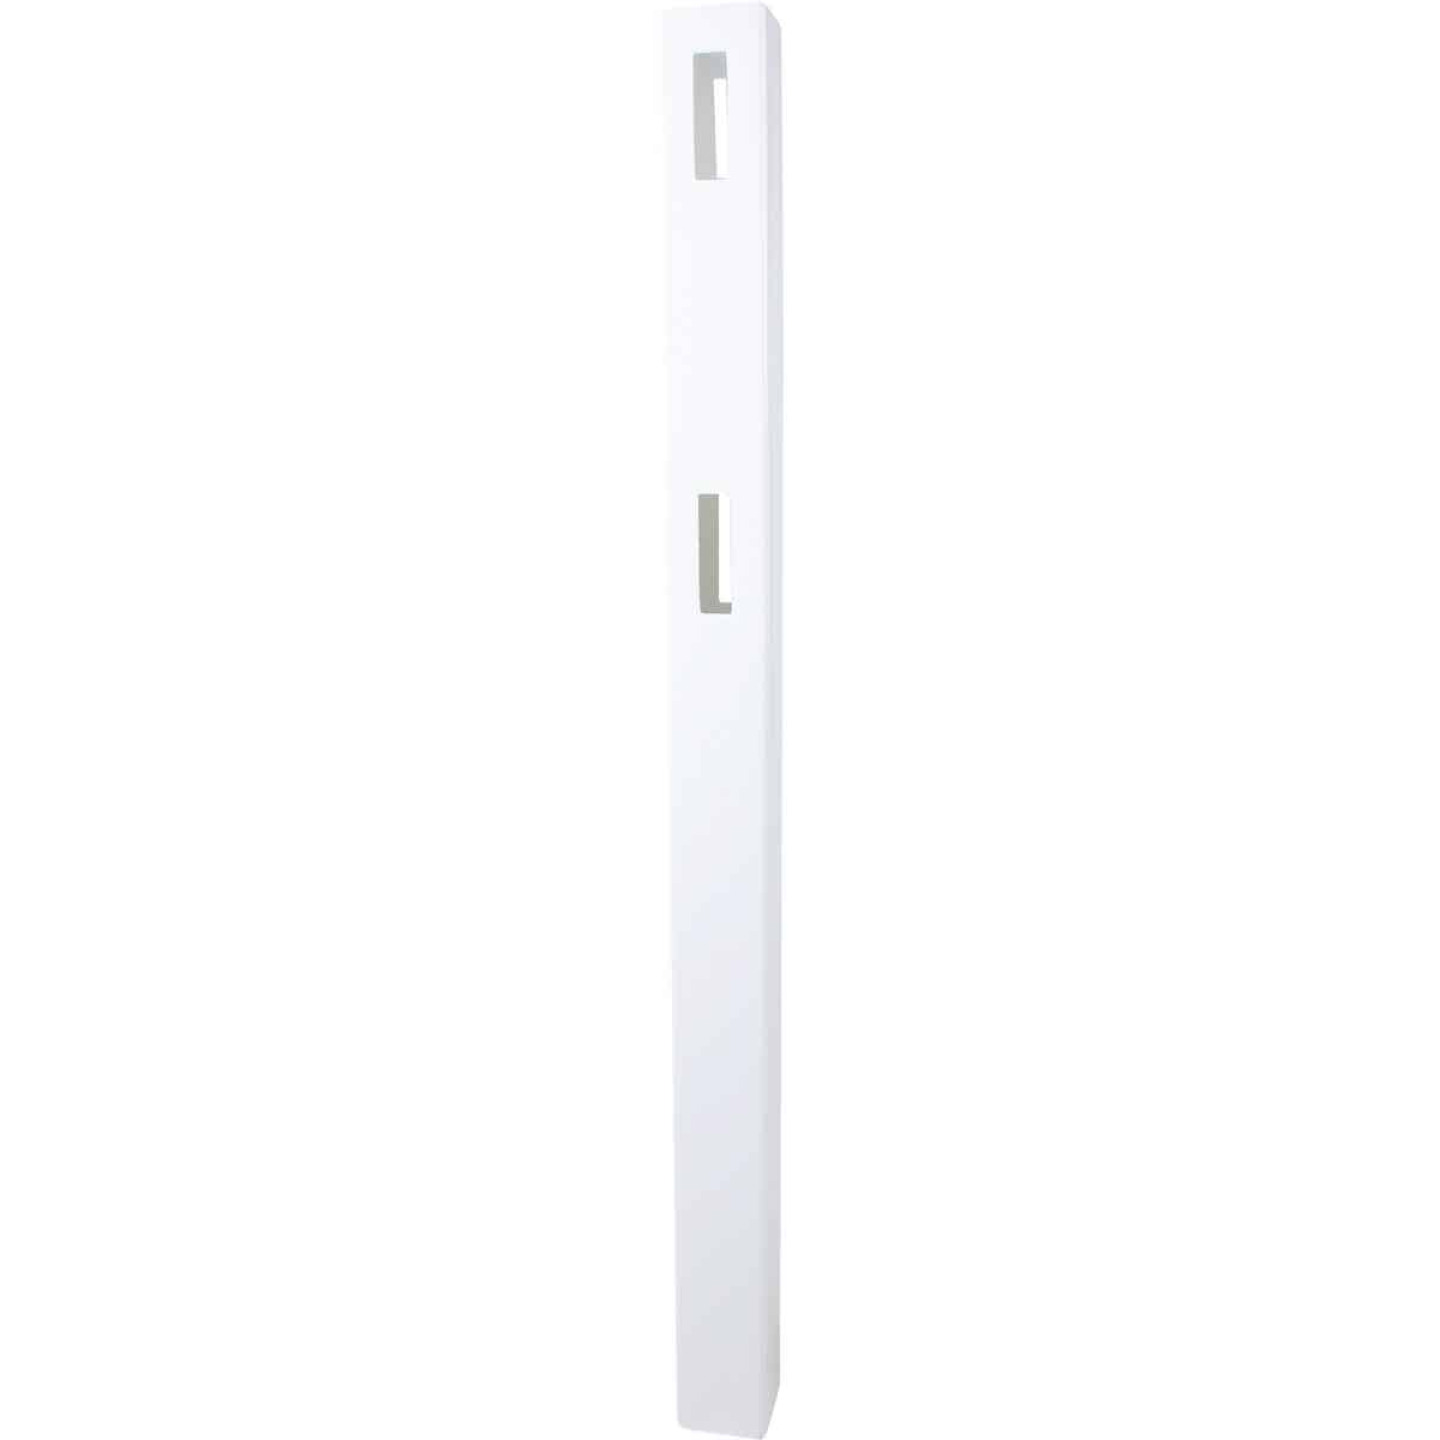 Outdoor Essentials 5 In. x 5 In. x 60 In. White Line 2-Rail Fence Vinyl Post Image 5